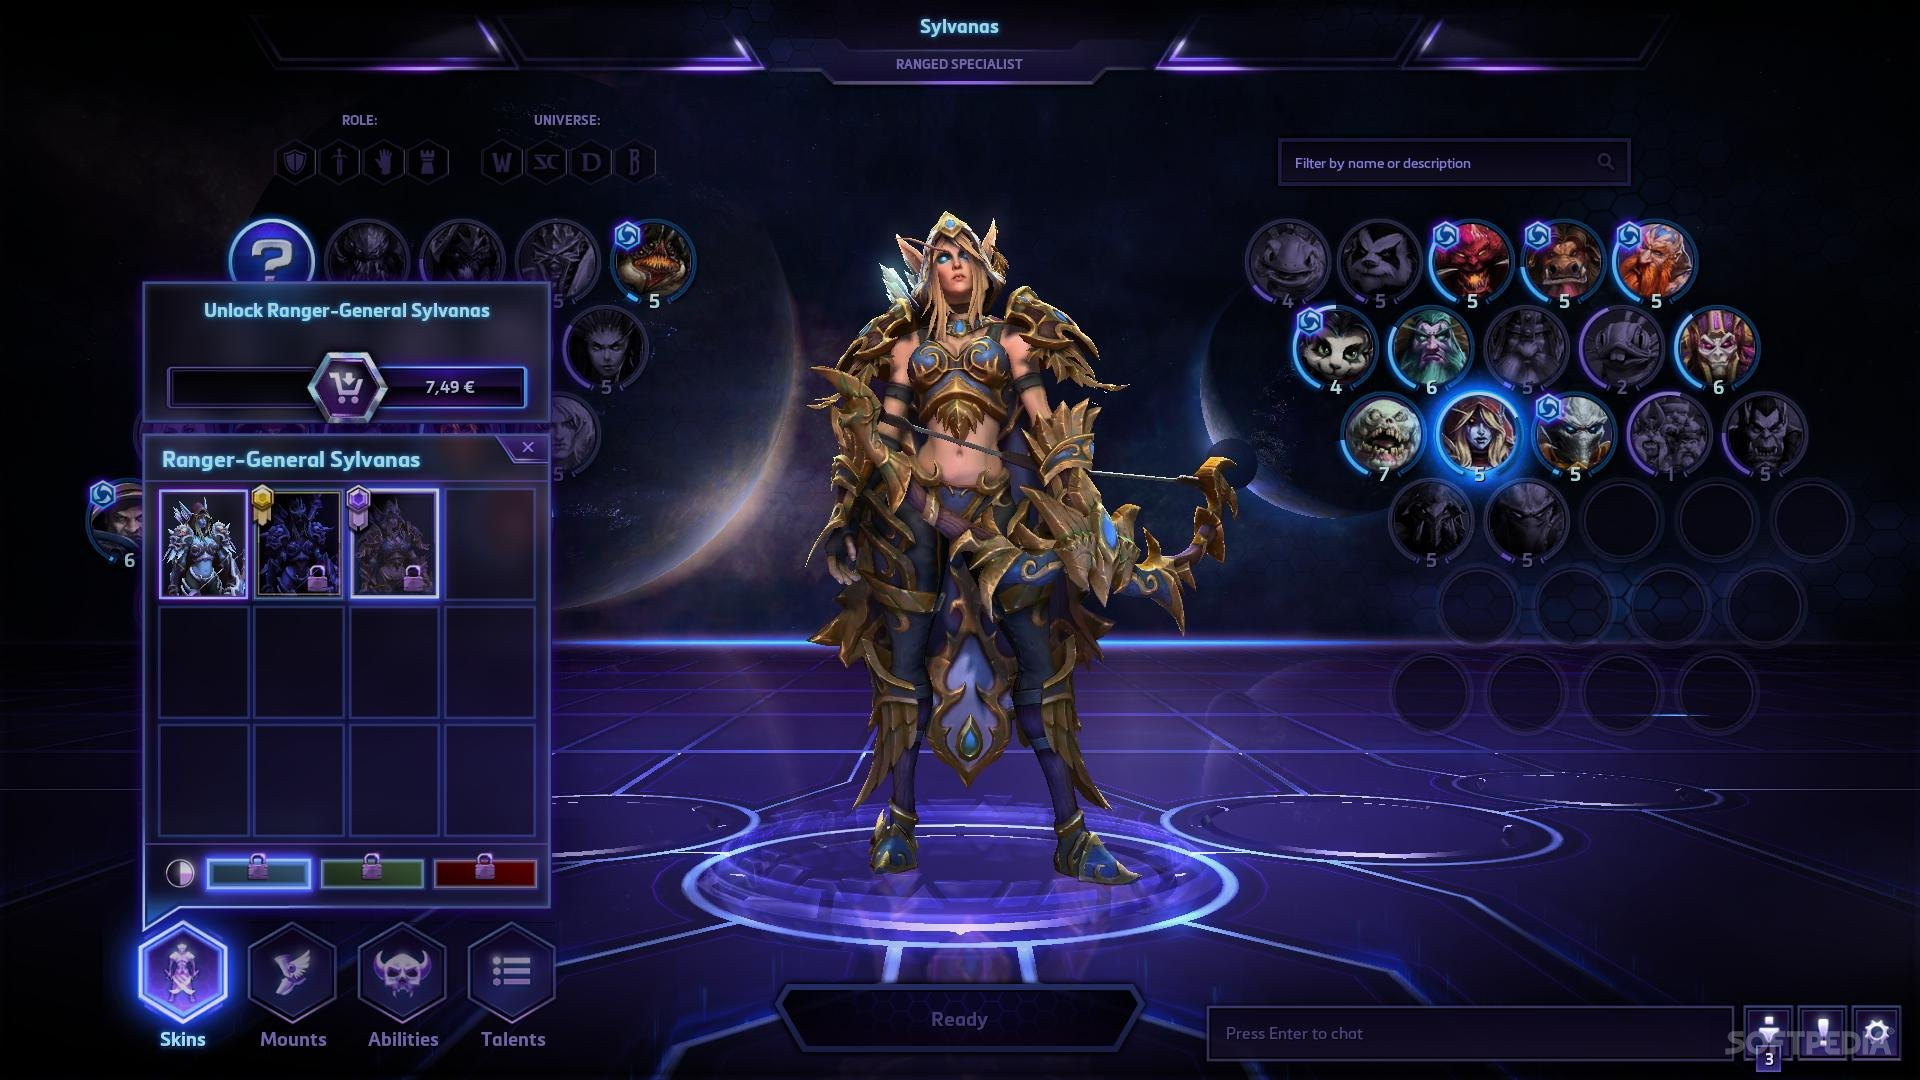 Storm league queue time - General Discussion - Heroes of the Storm Forums